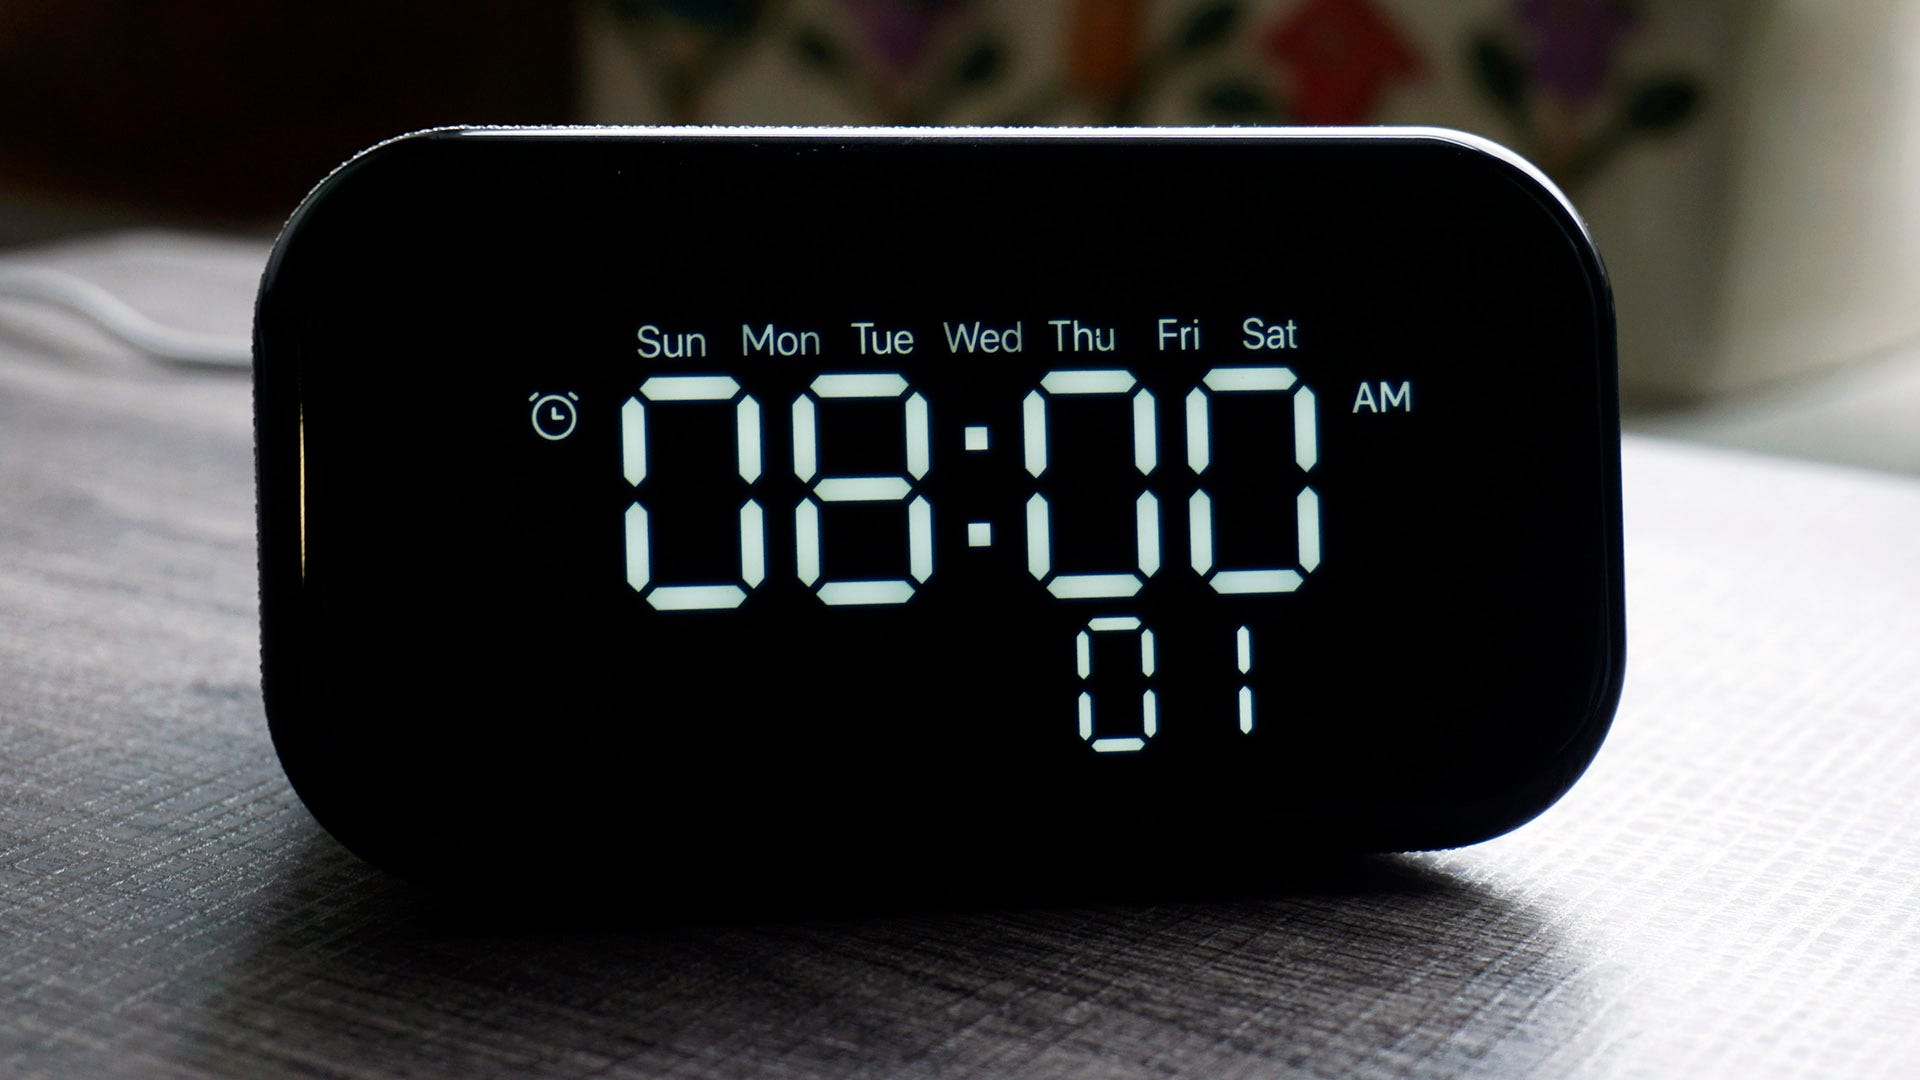 Lenovo Smart Clock Essential alarm setting